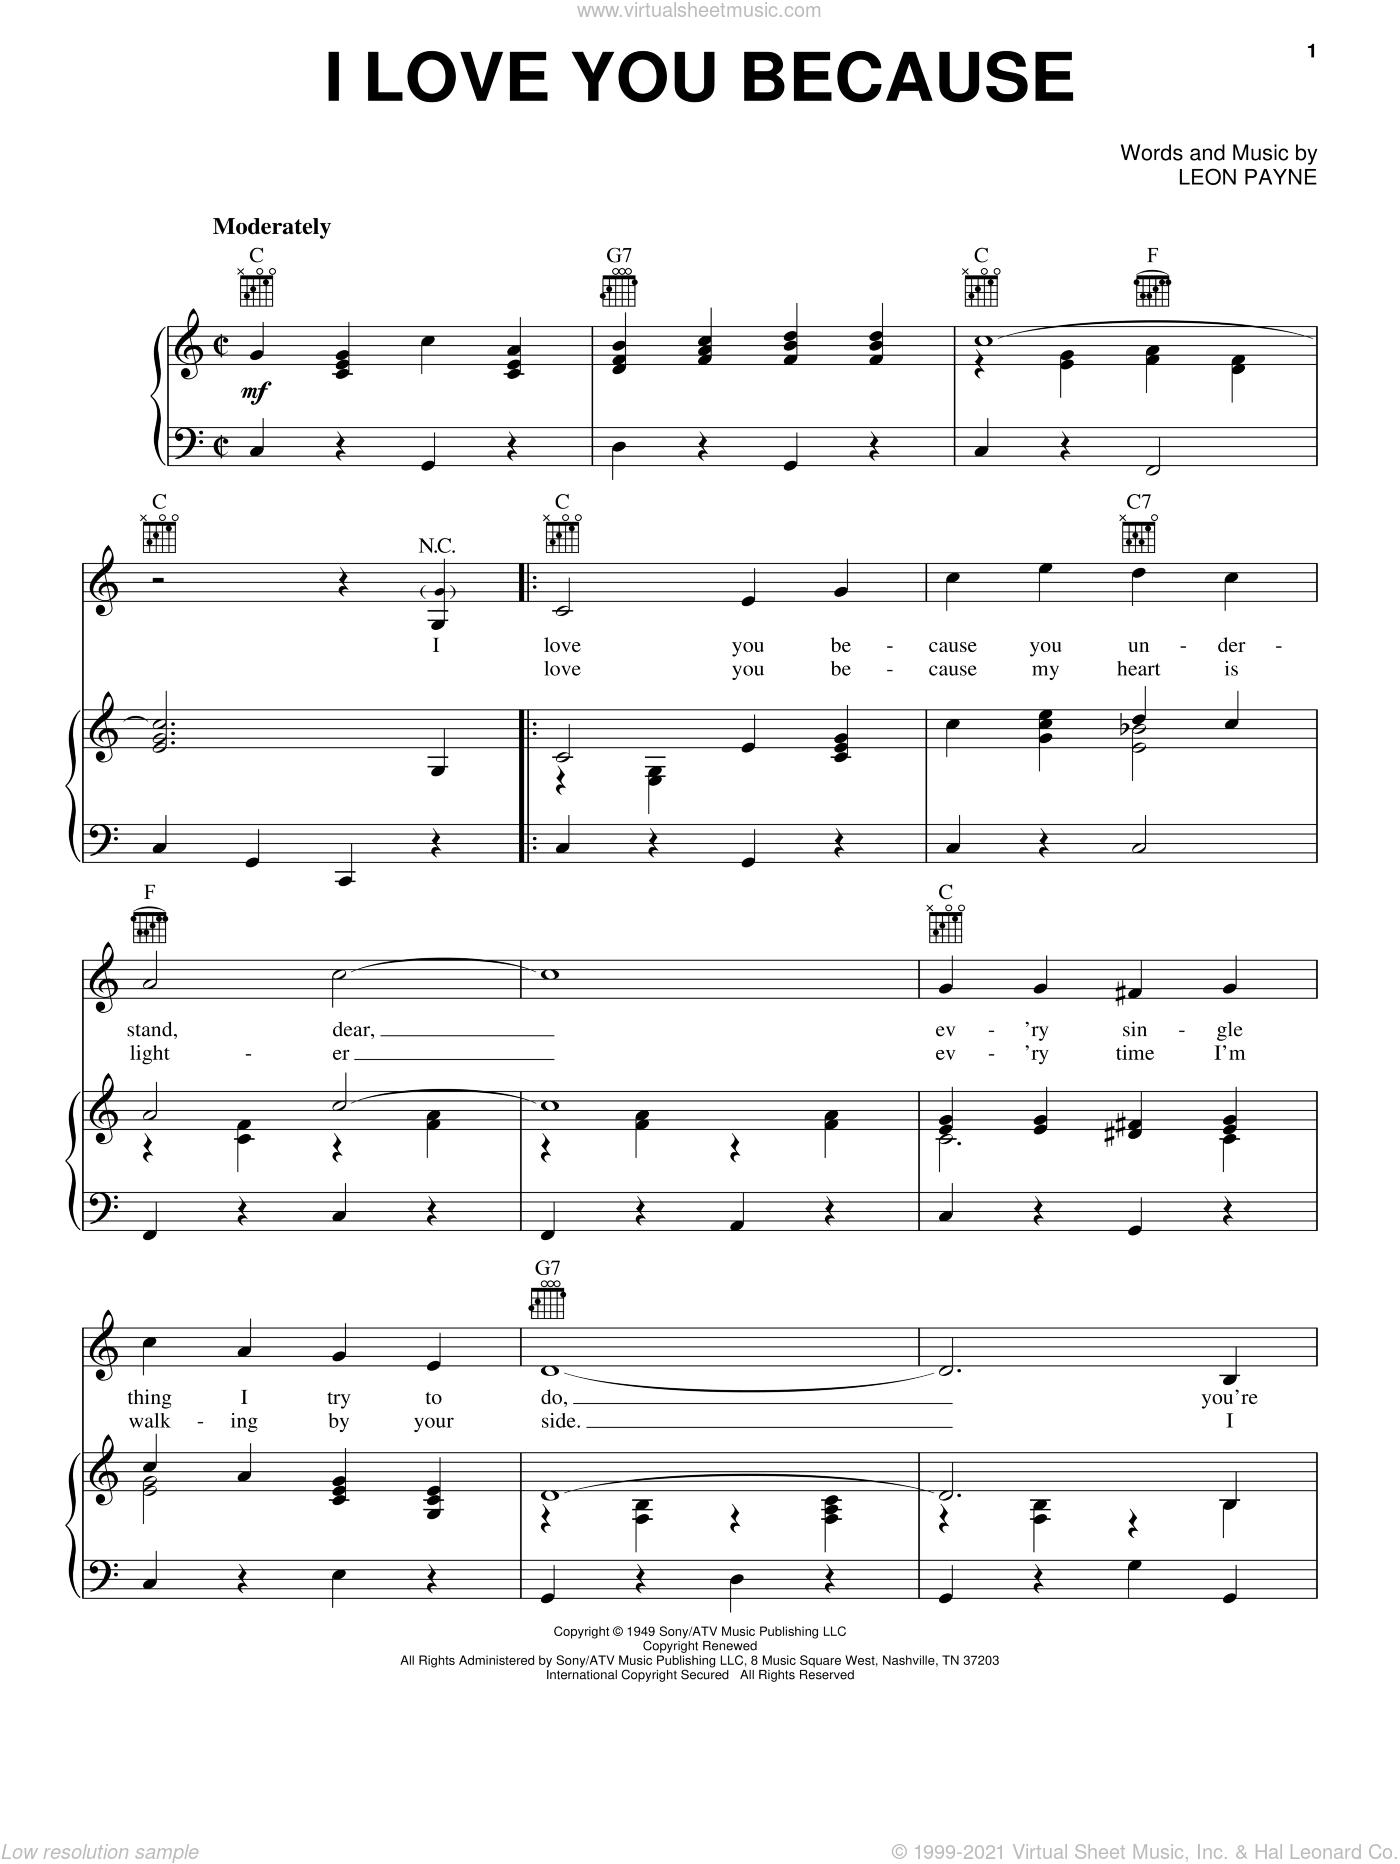 I Love You Because sheet music for voice, piano or guitar by Leon Payne, intermediate skill level